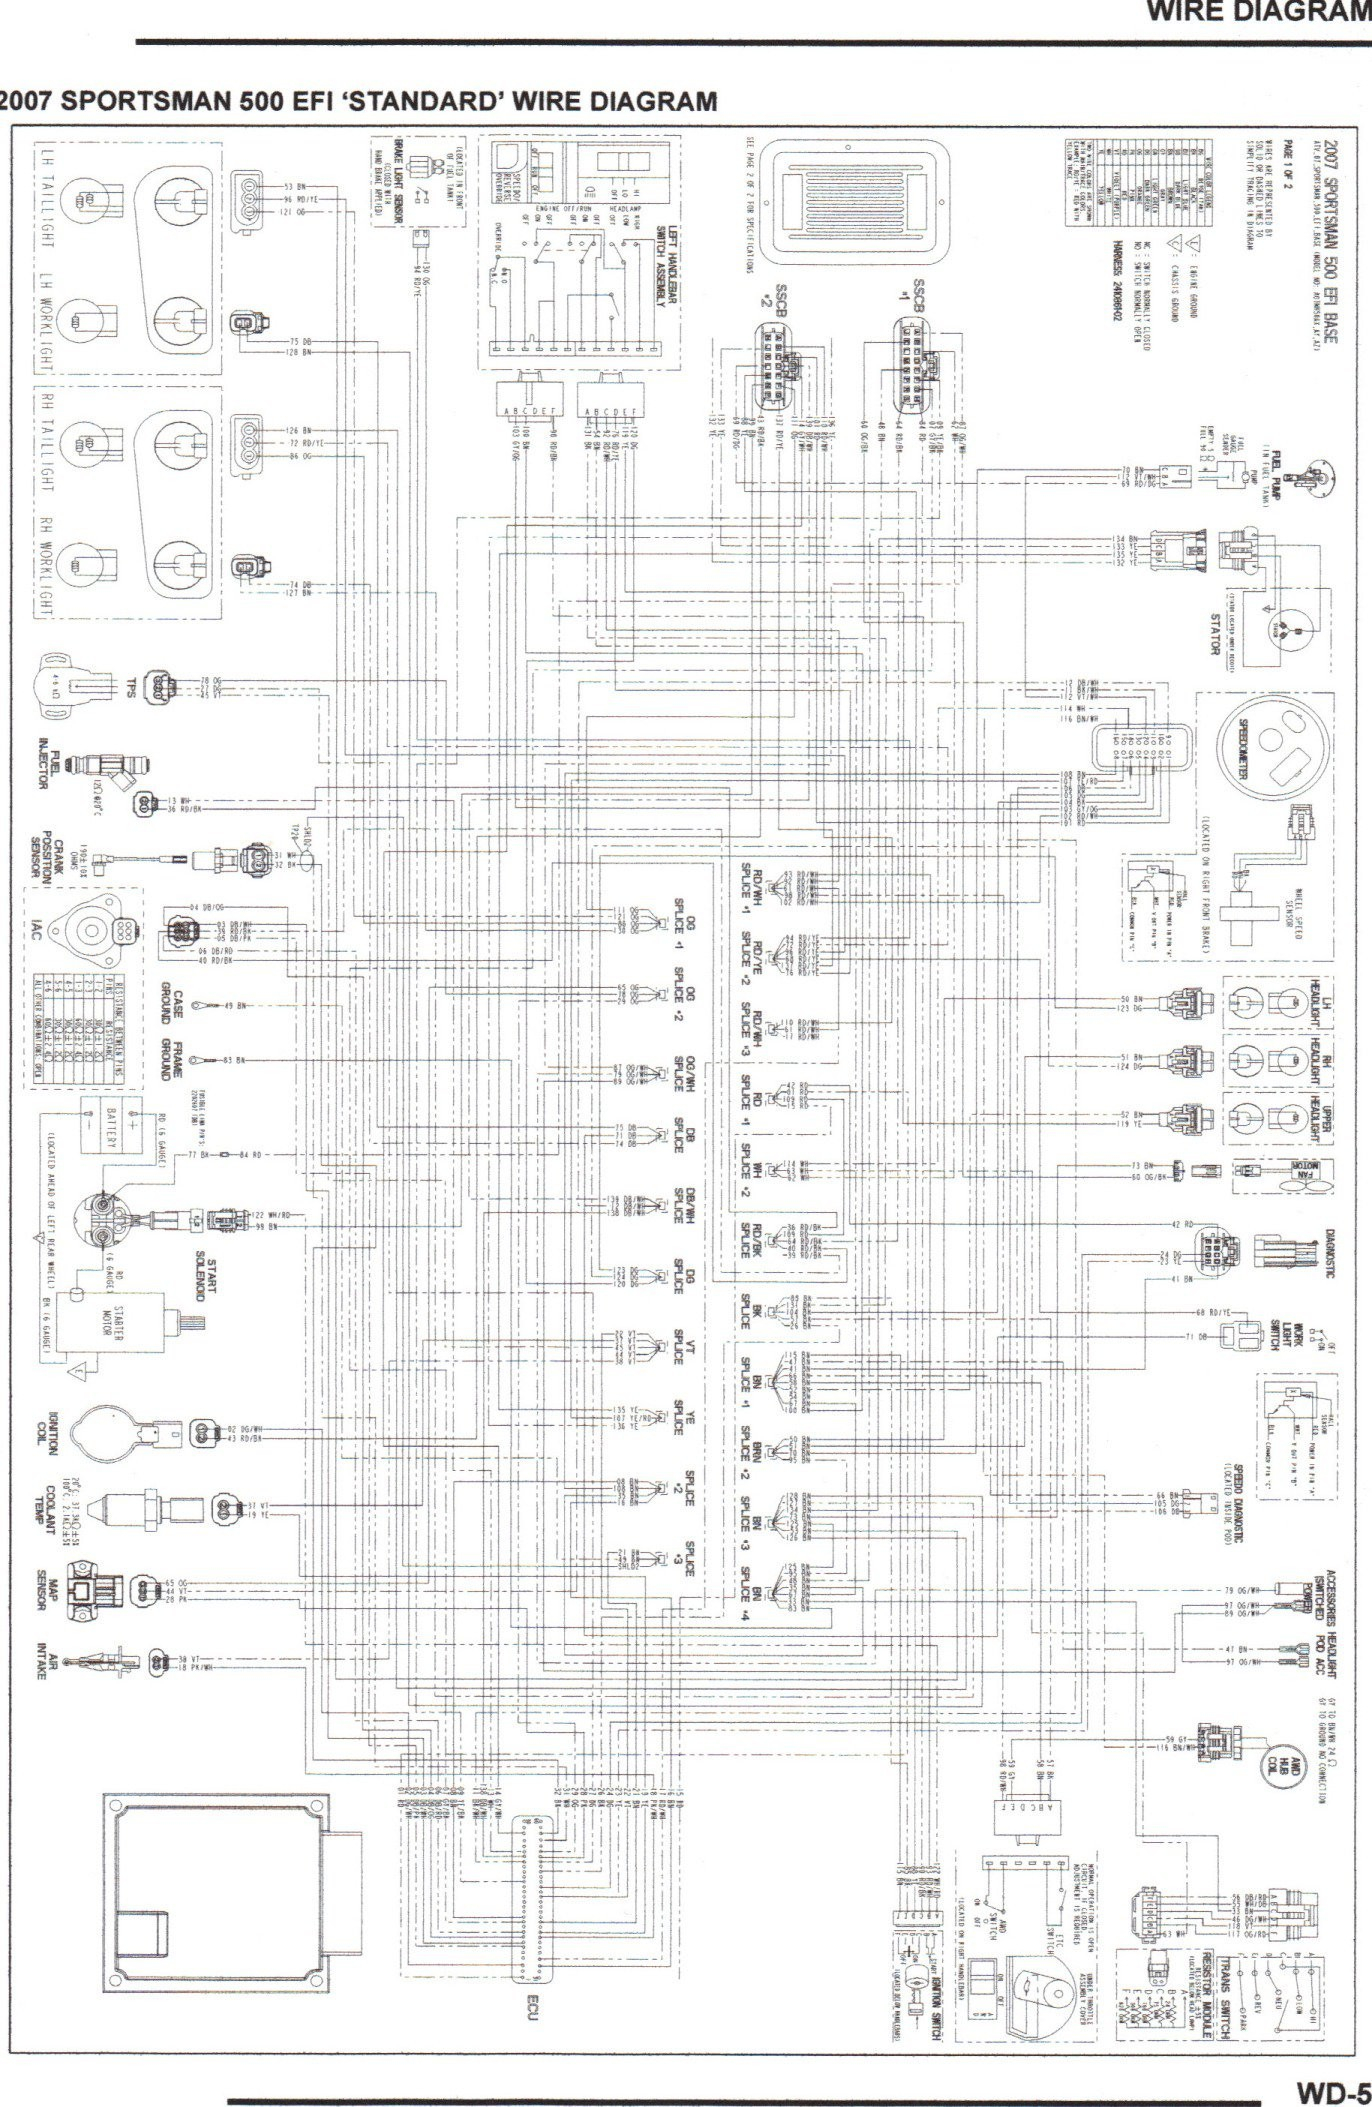 Sentinel 500 Wiring Diagram Simple Shematics Basic Home Illustrated Detailed Schematics Electrical